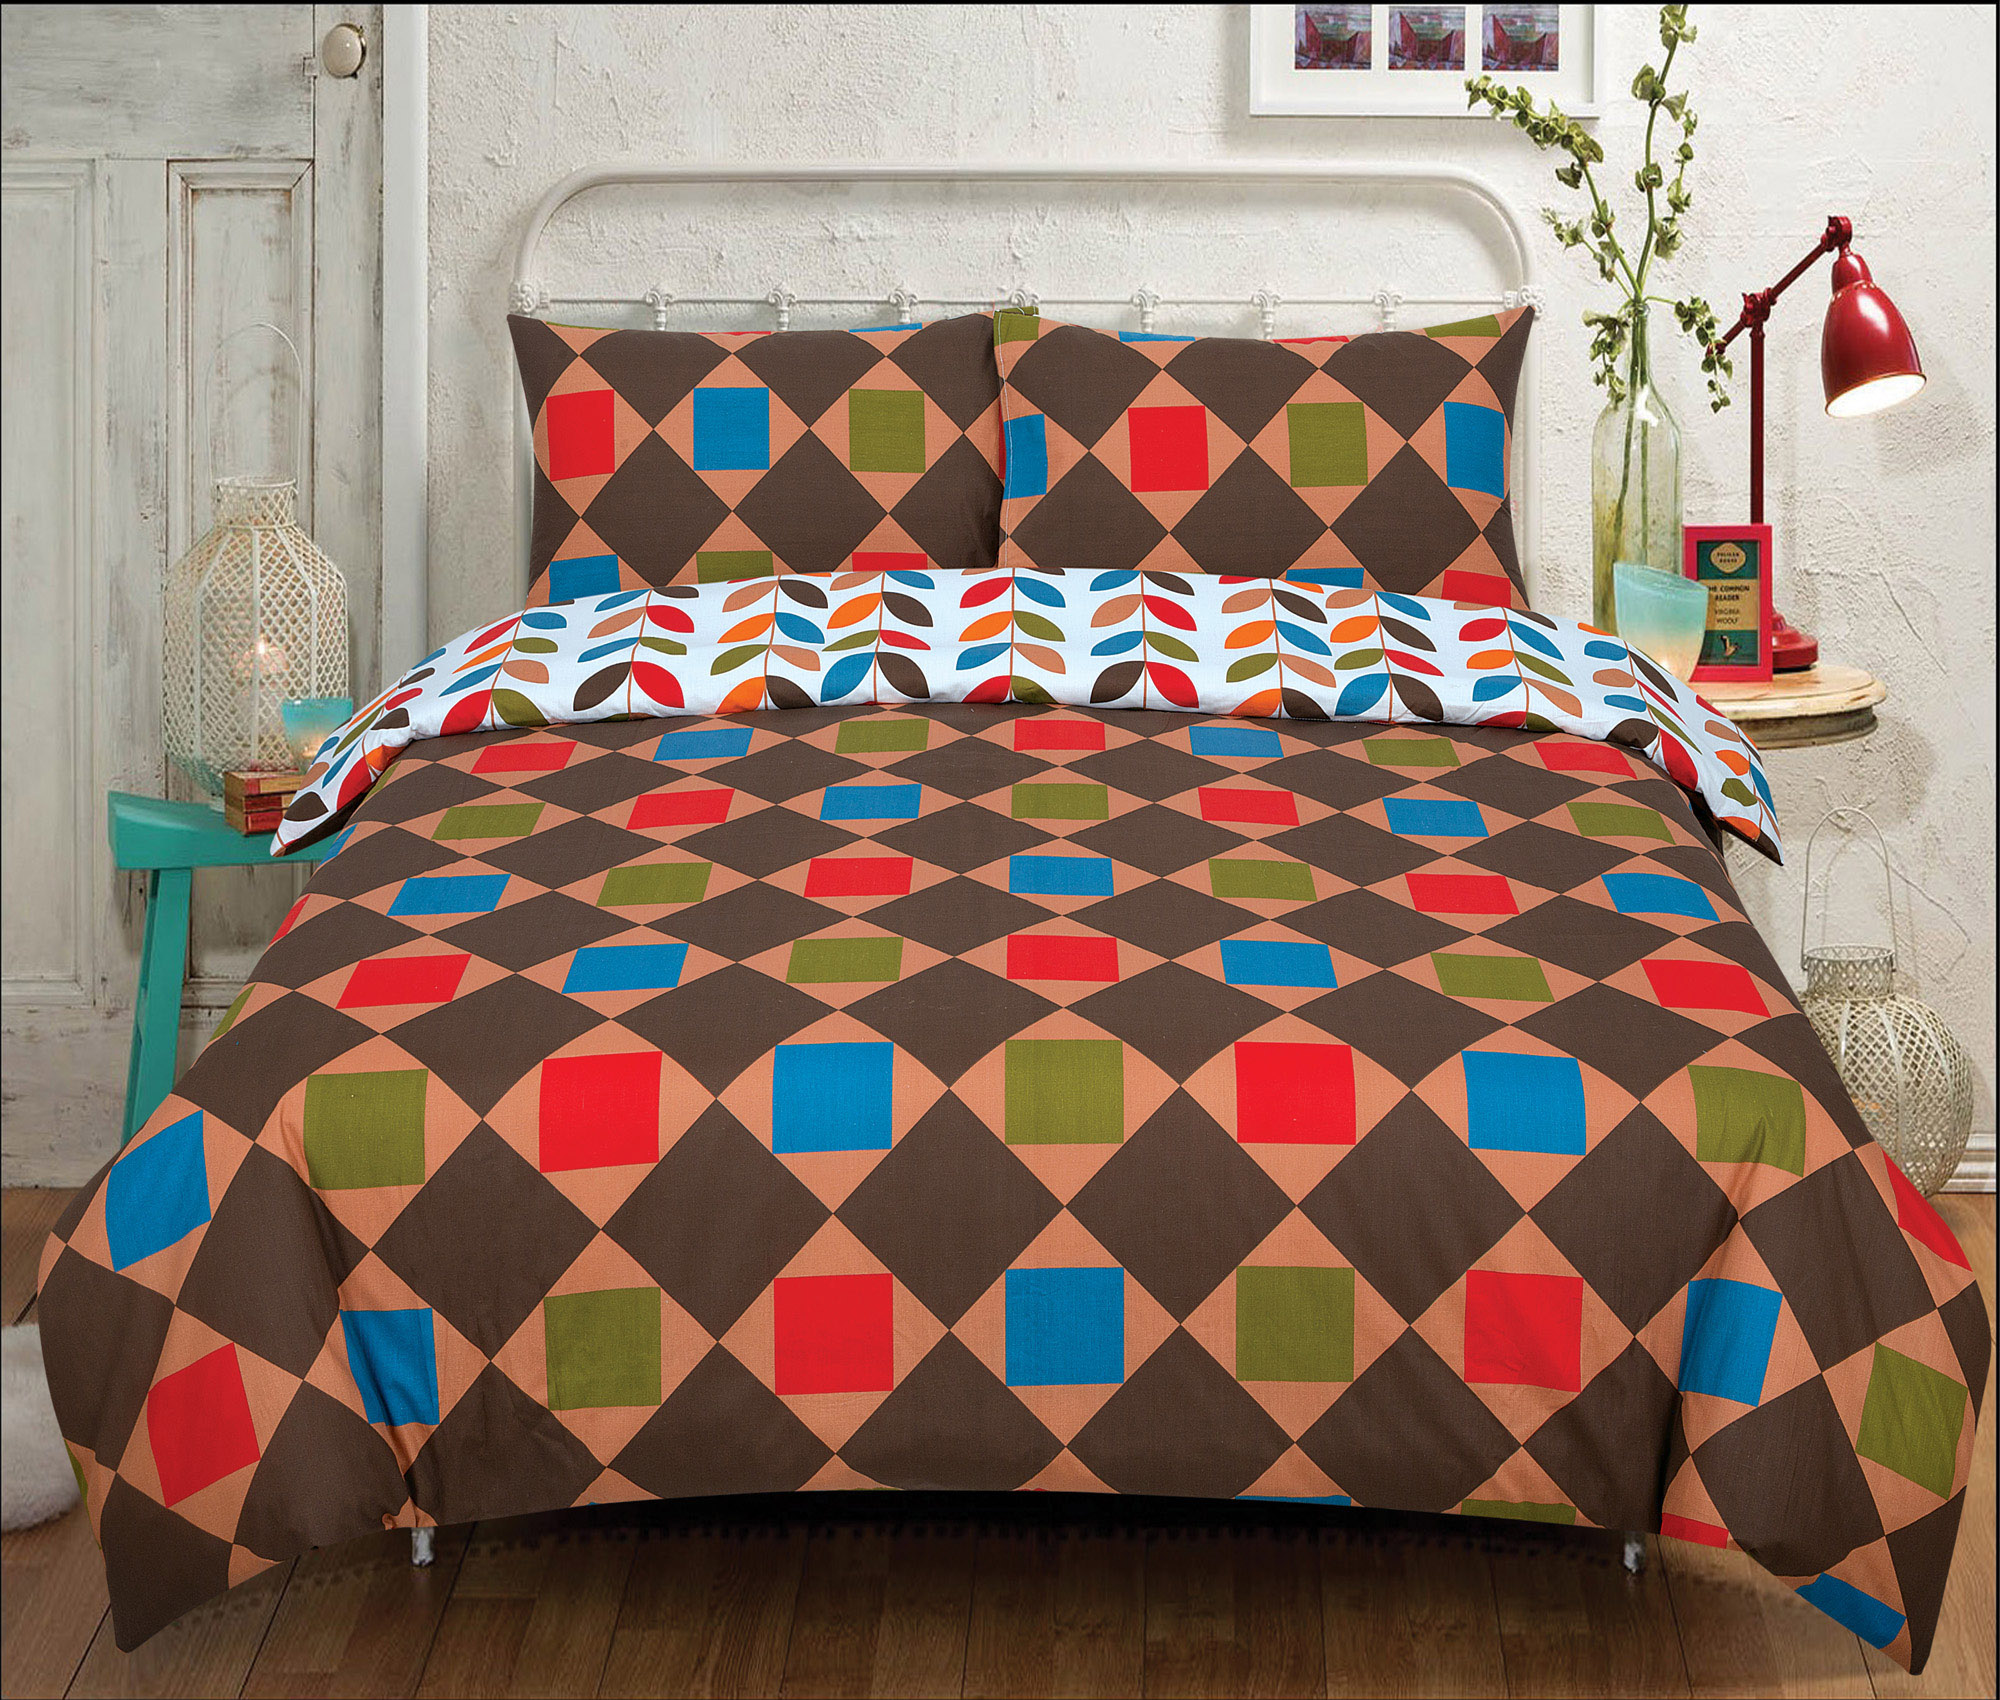 Duvet-Cover-with-Pillow-Case-Quilt-Cover-Bedding-Set-in-Single-Double-King-size miniatura 23